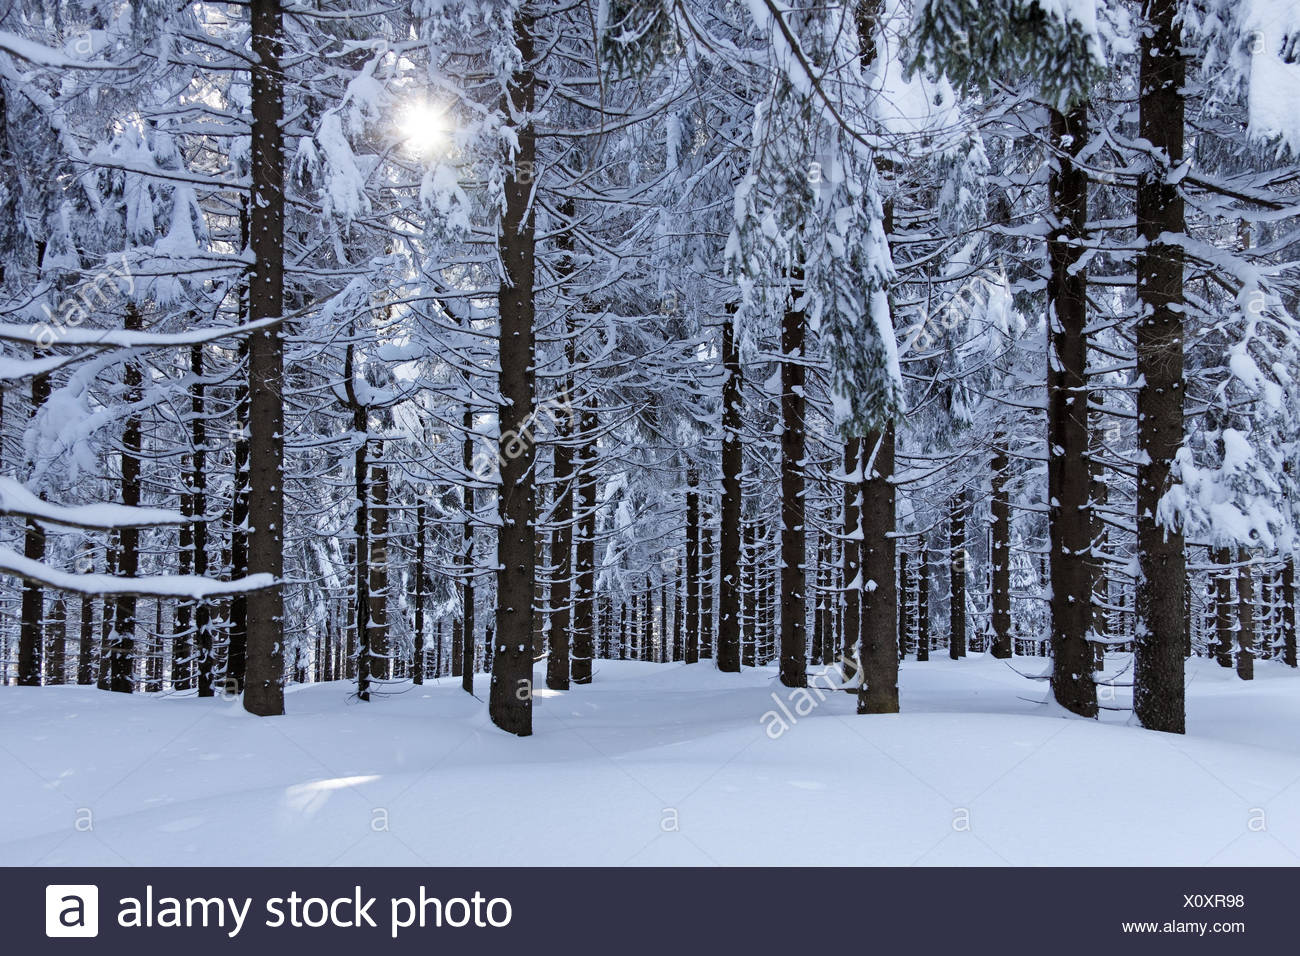 Rennsteig, forest, spruces, snow, sun, - Stock Image